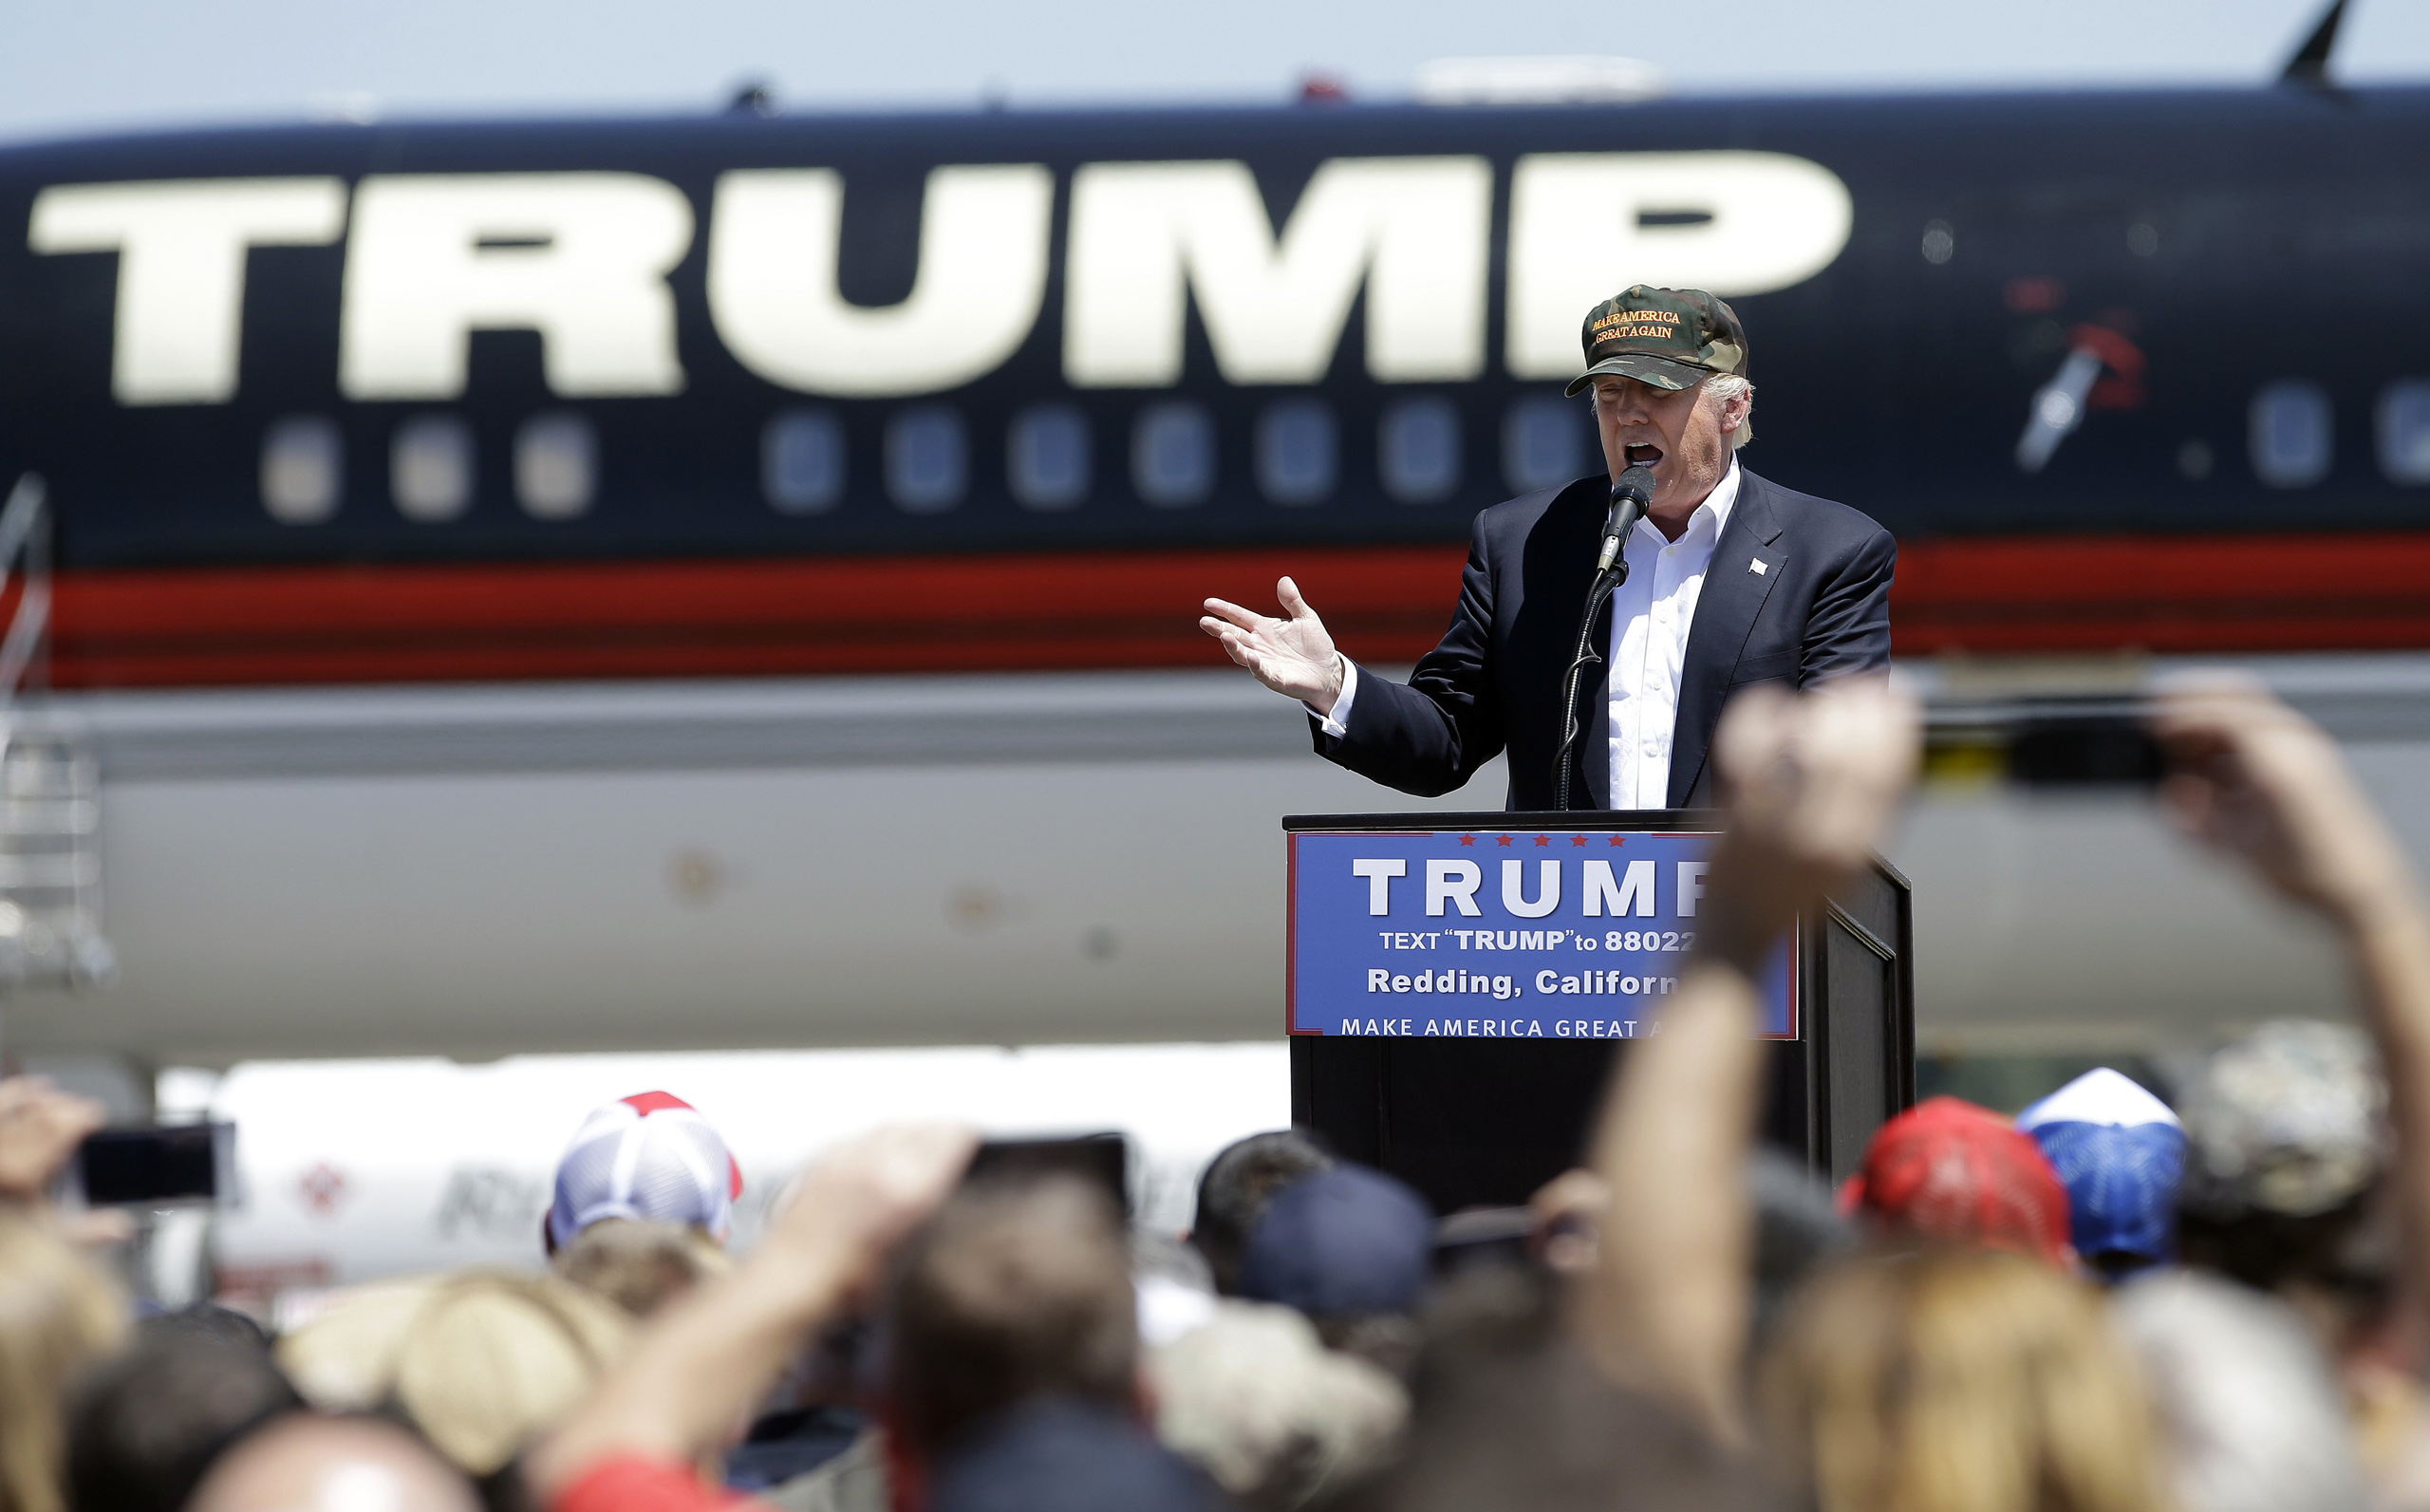 Republican presidential candidate Donald Trump speaks at a campaign rally at the Redding Municipal Airport in Redding, Calif., June 3, 2016.